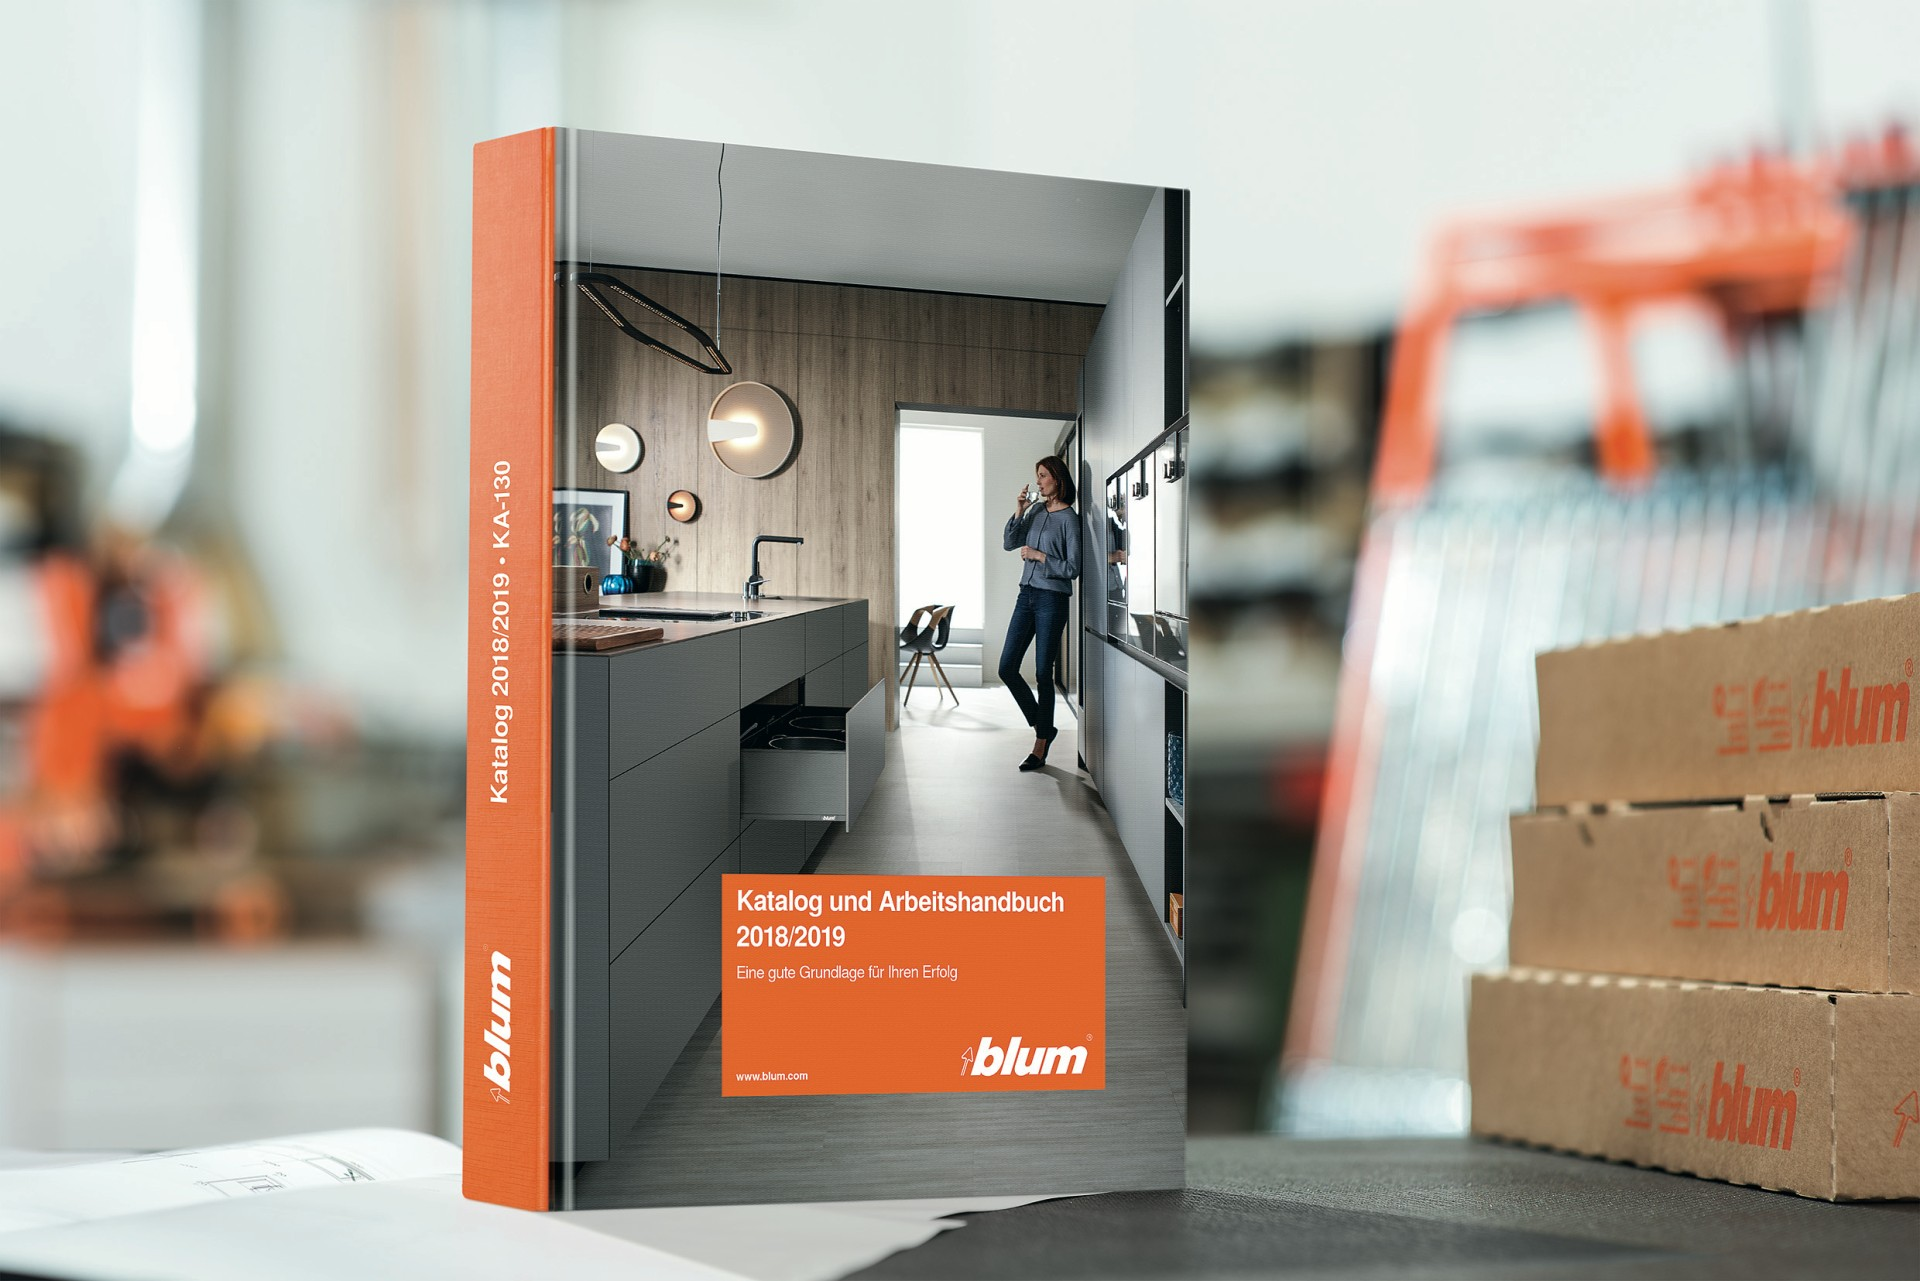 Fittings solutions by Blum | Blum